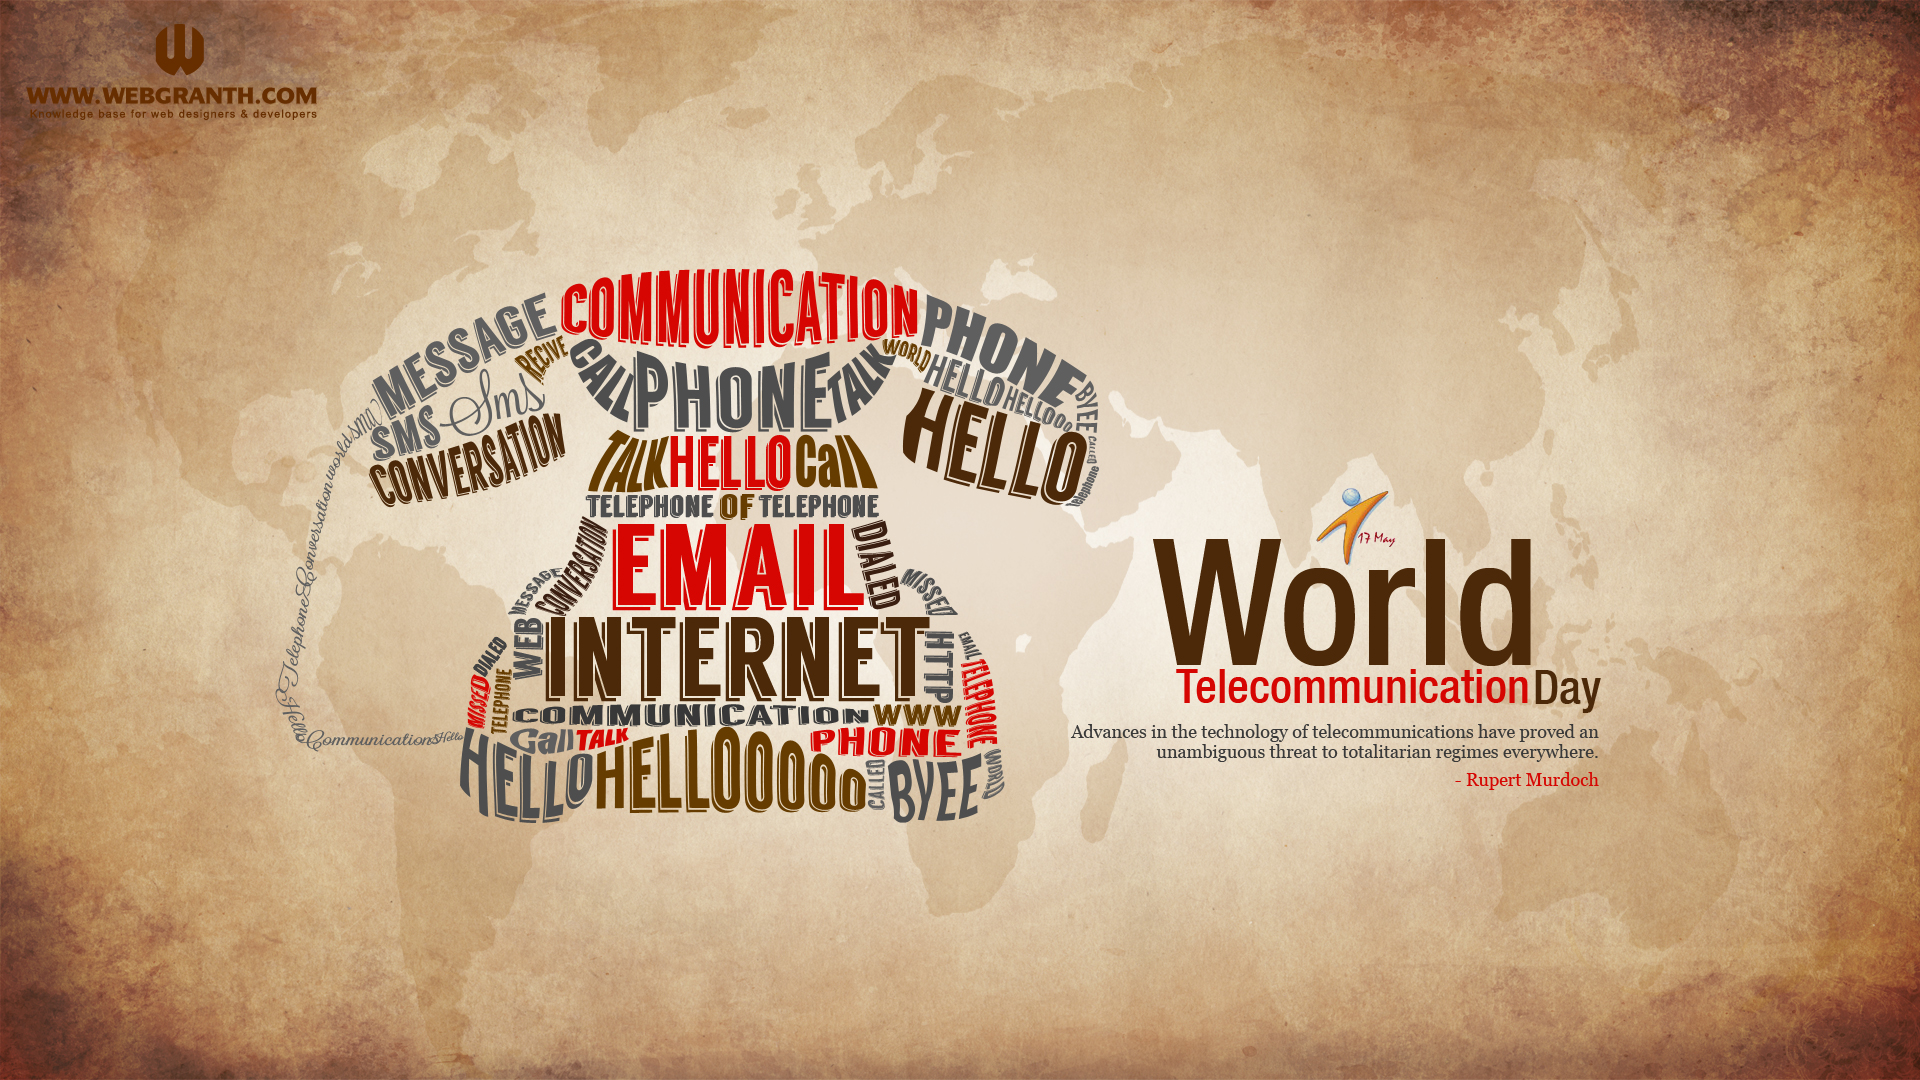 World Telecommunication Day Wallpaper 2013 3 View HD